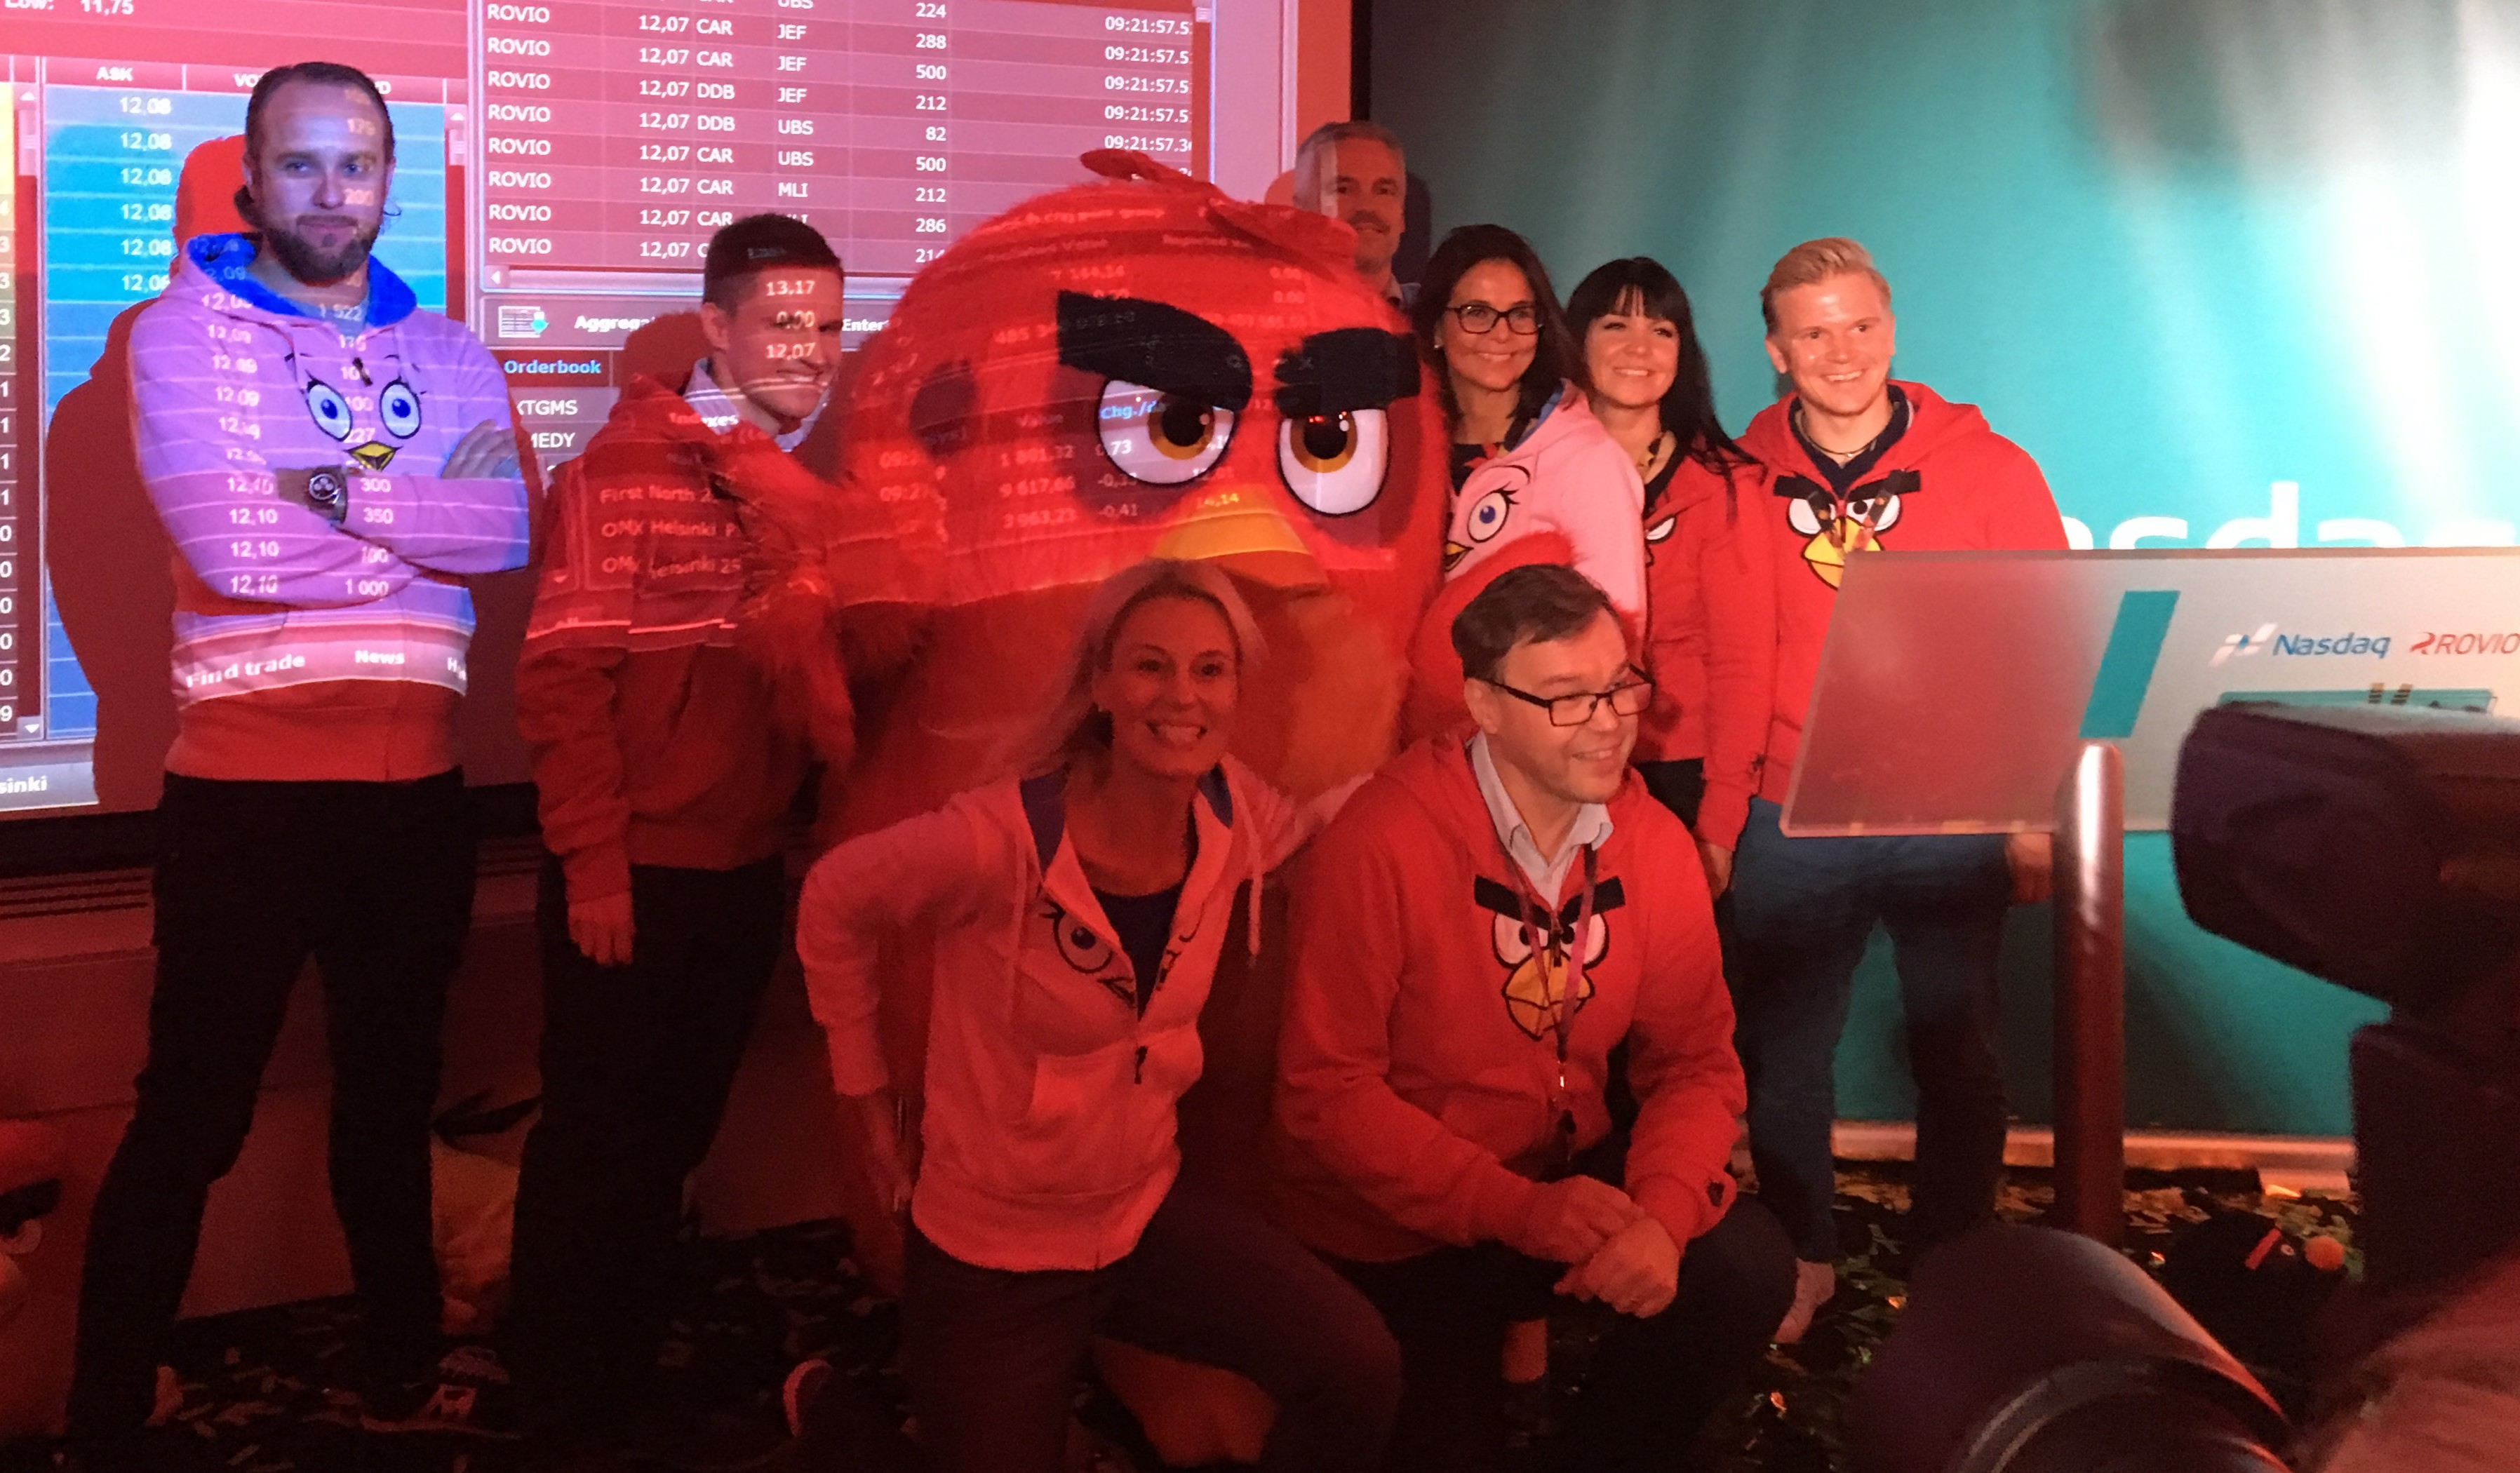 Rovio's Unlikely Journey to their IPO